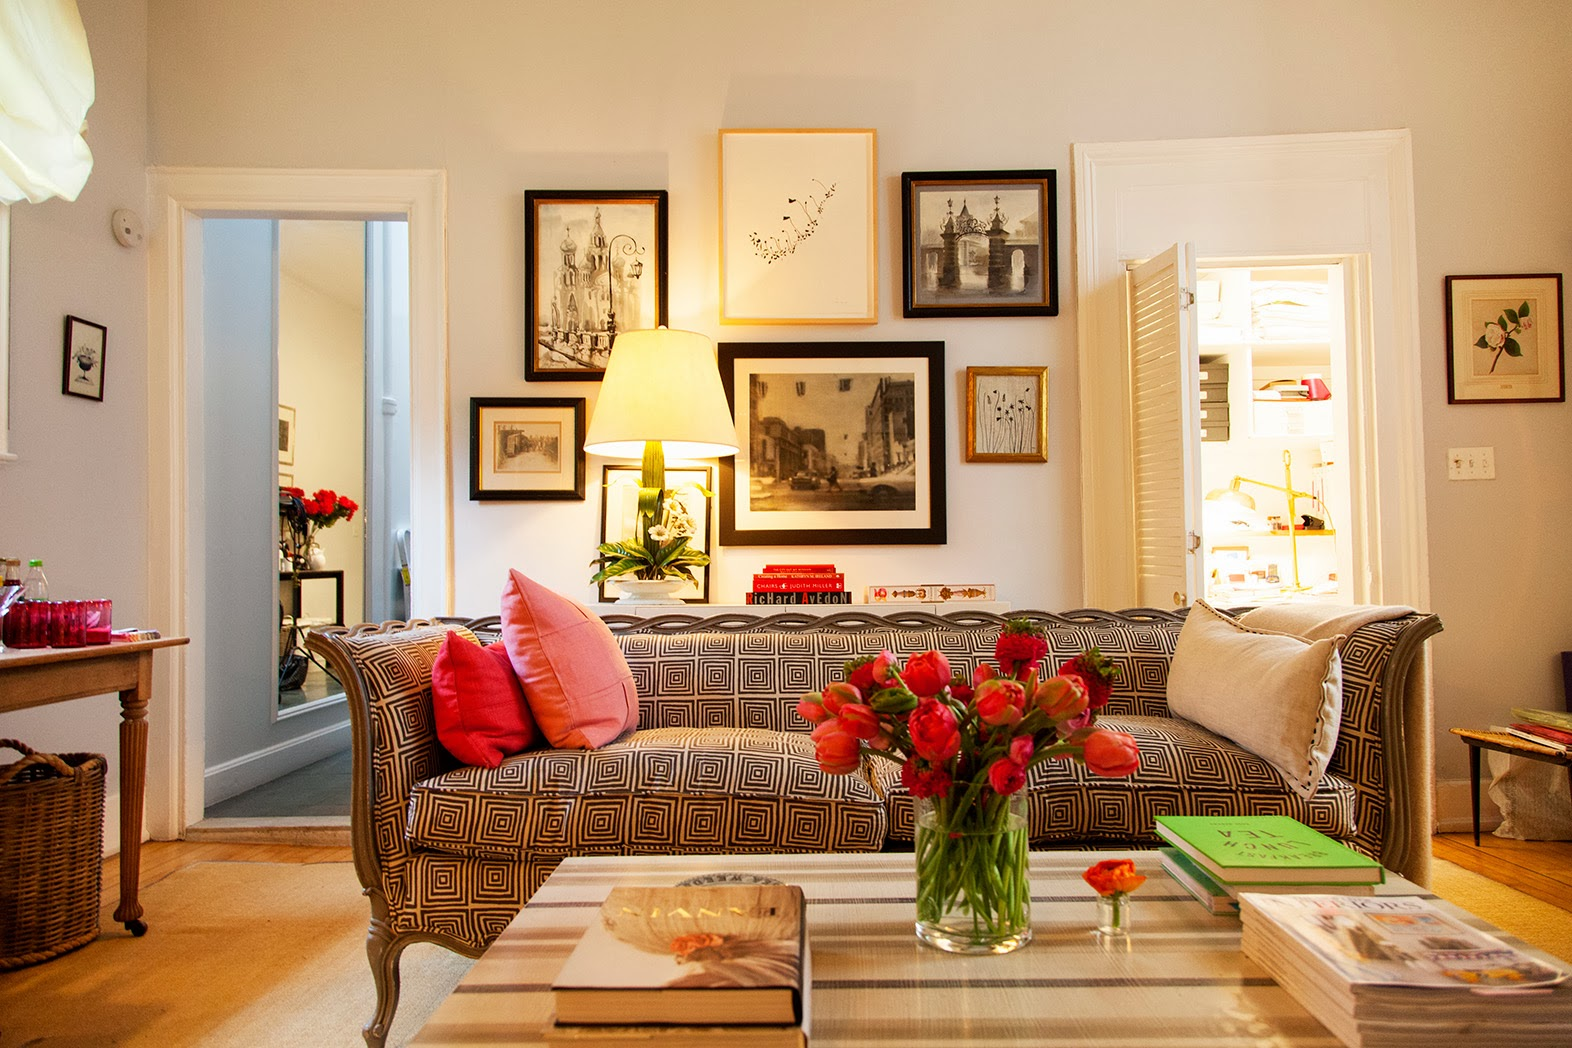 Amazing New York Apartment What Can You Rent For A Month - Student apartment smallest new york apartments